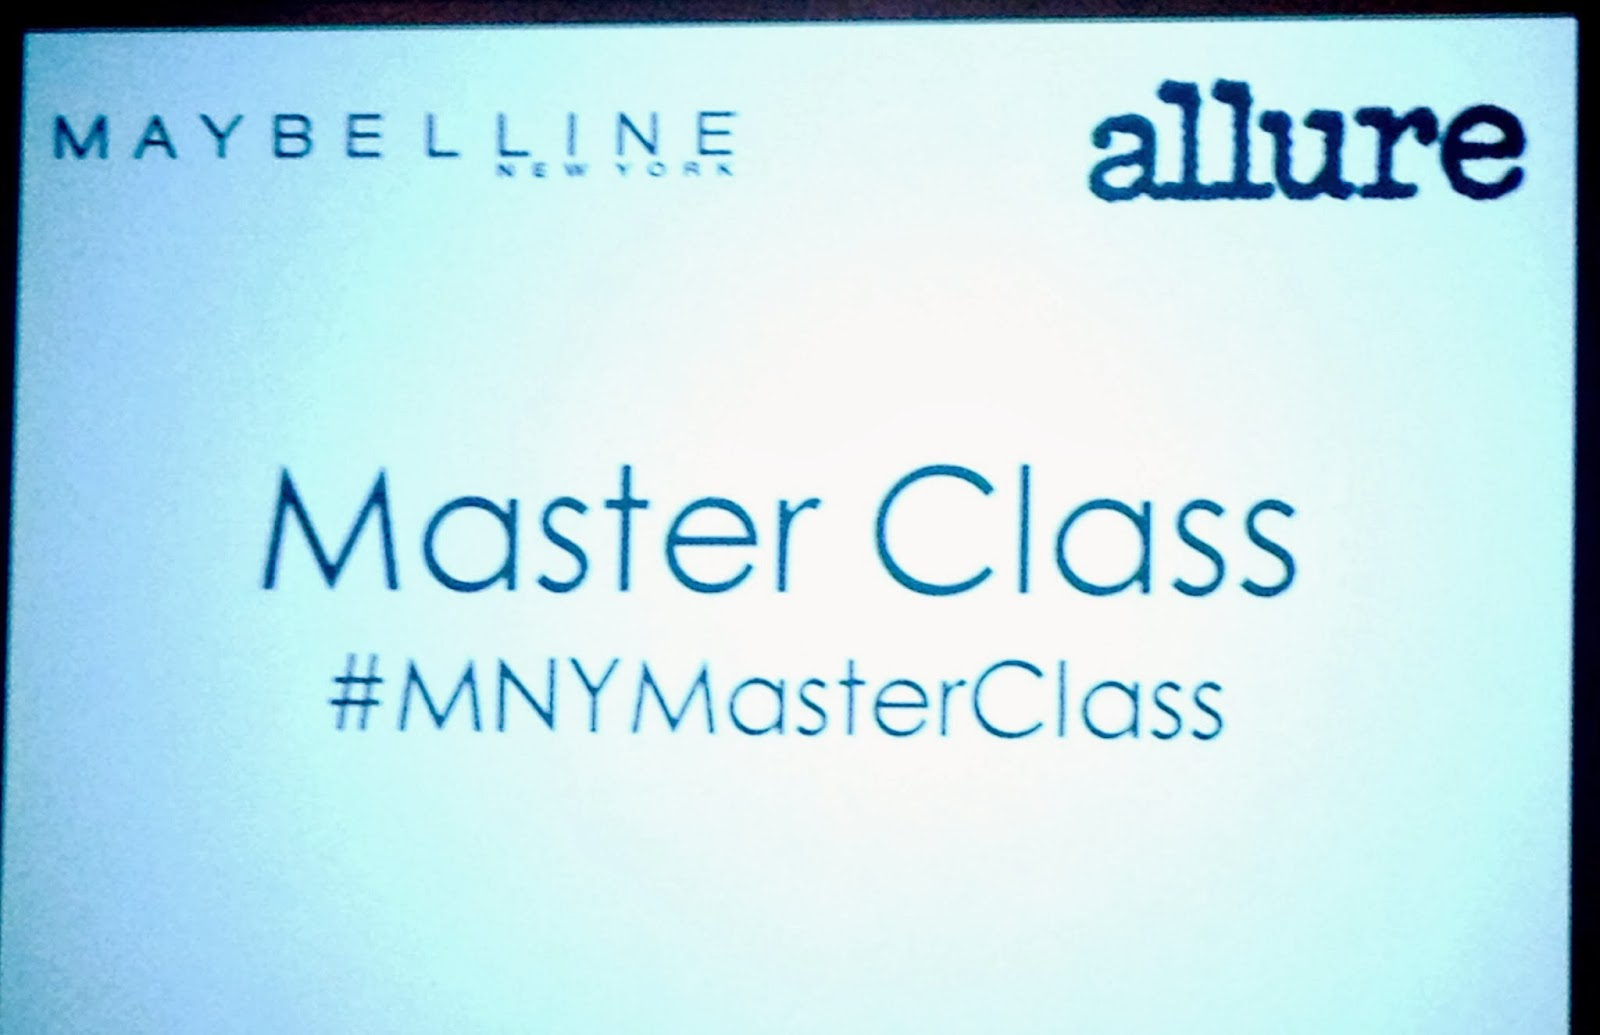 Maybelline Master Class At Allure Magazine